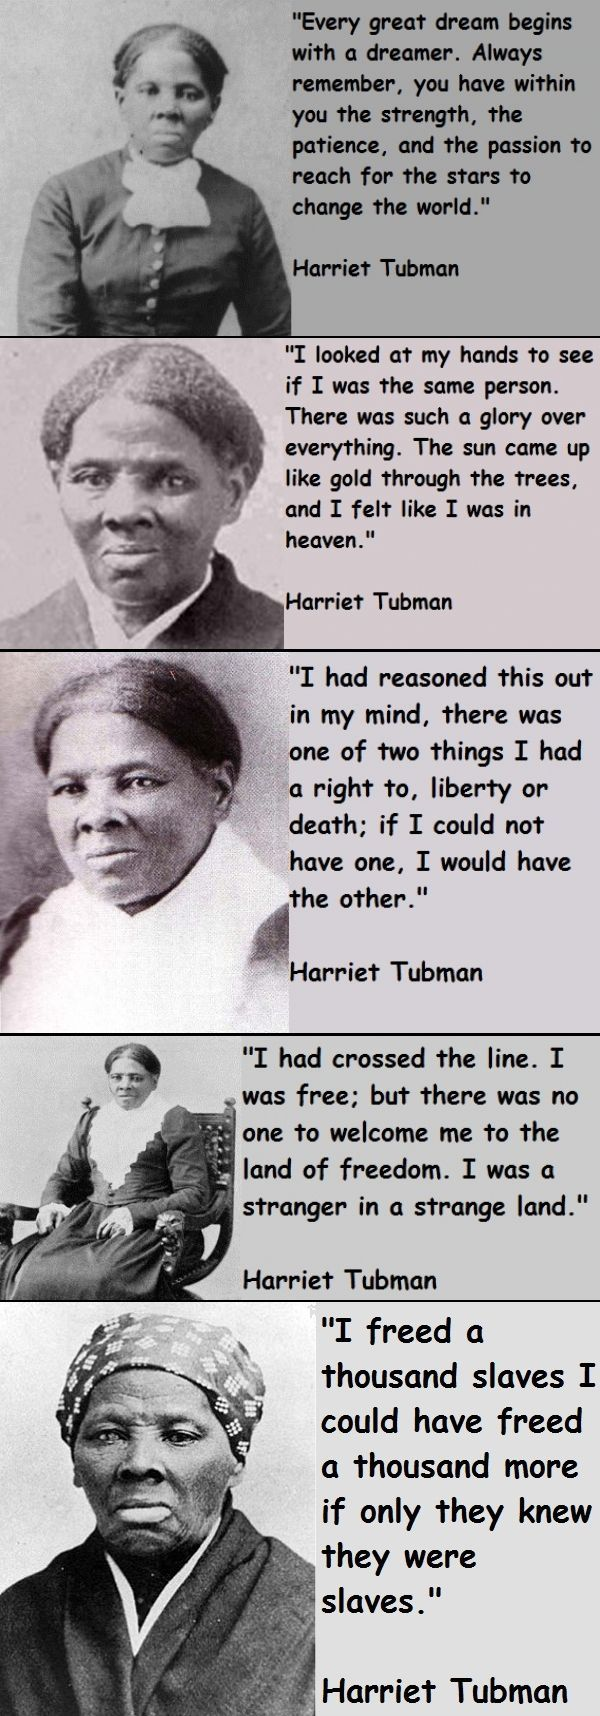 Harriet Tubman Became Famous As A